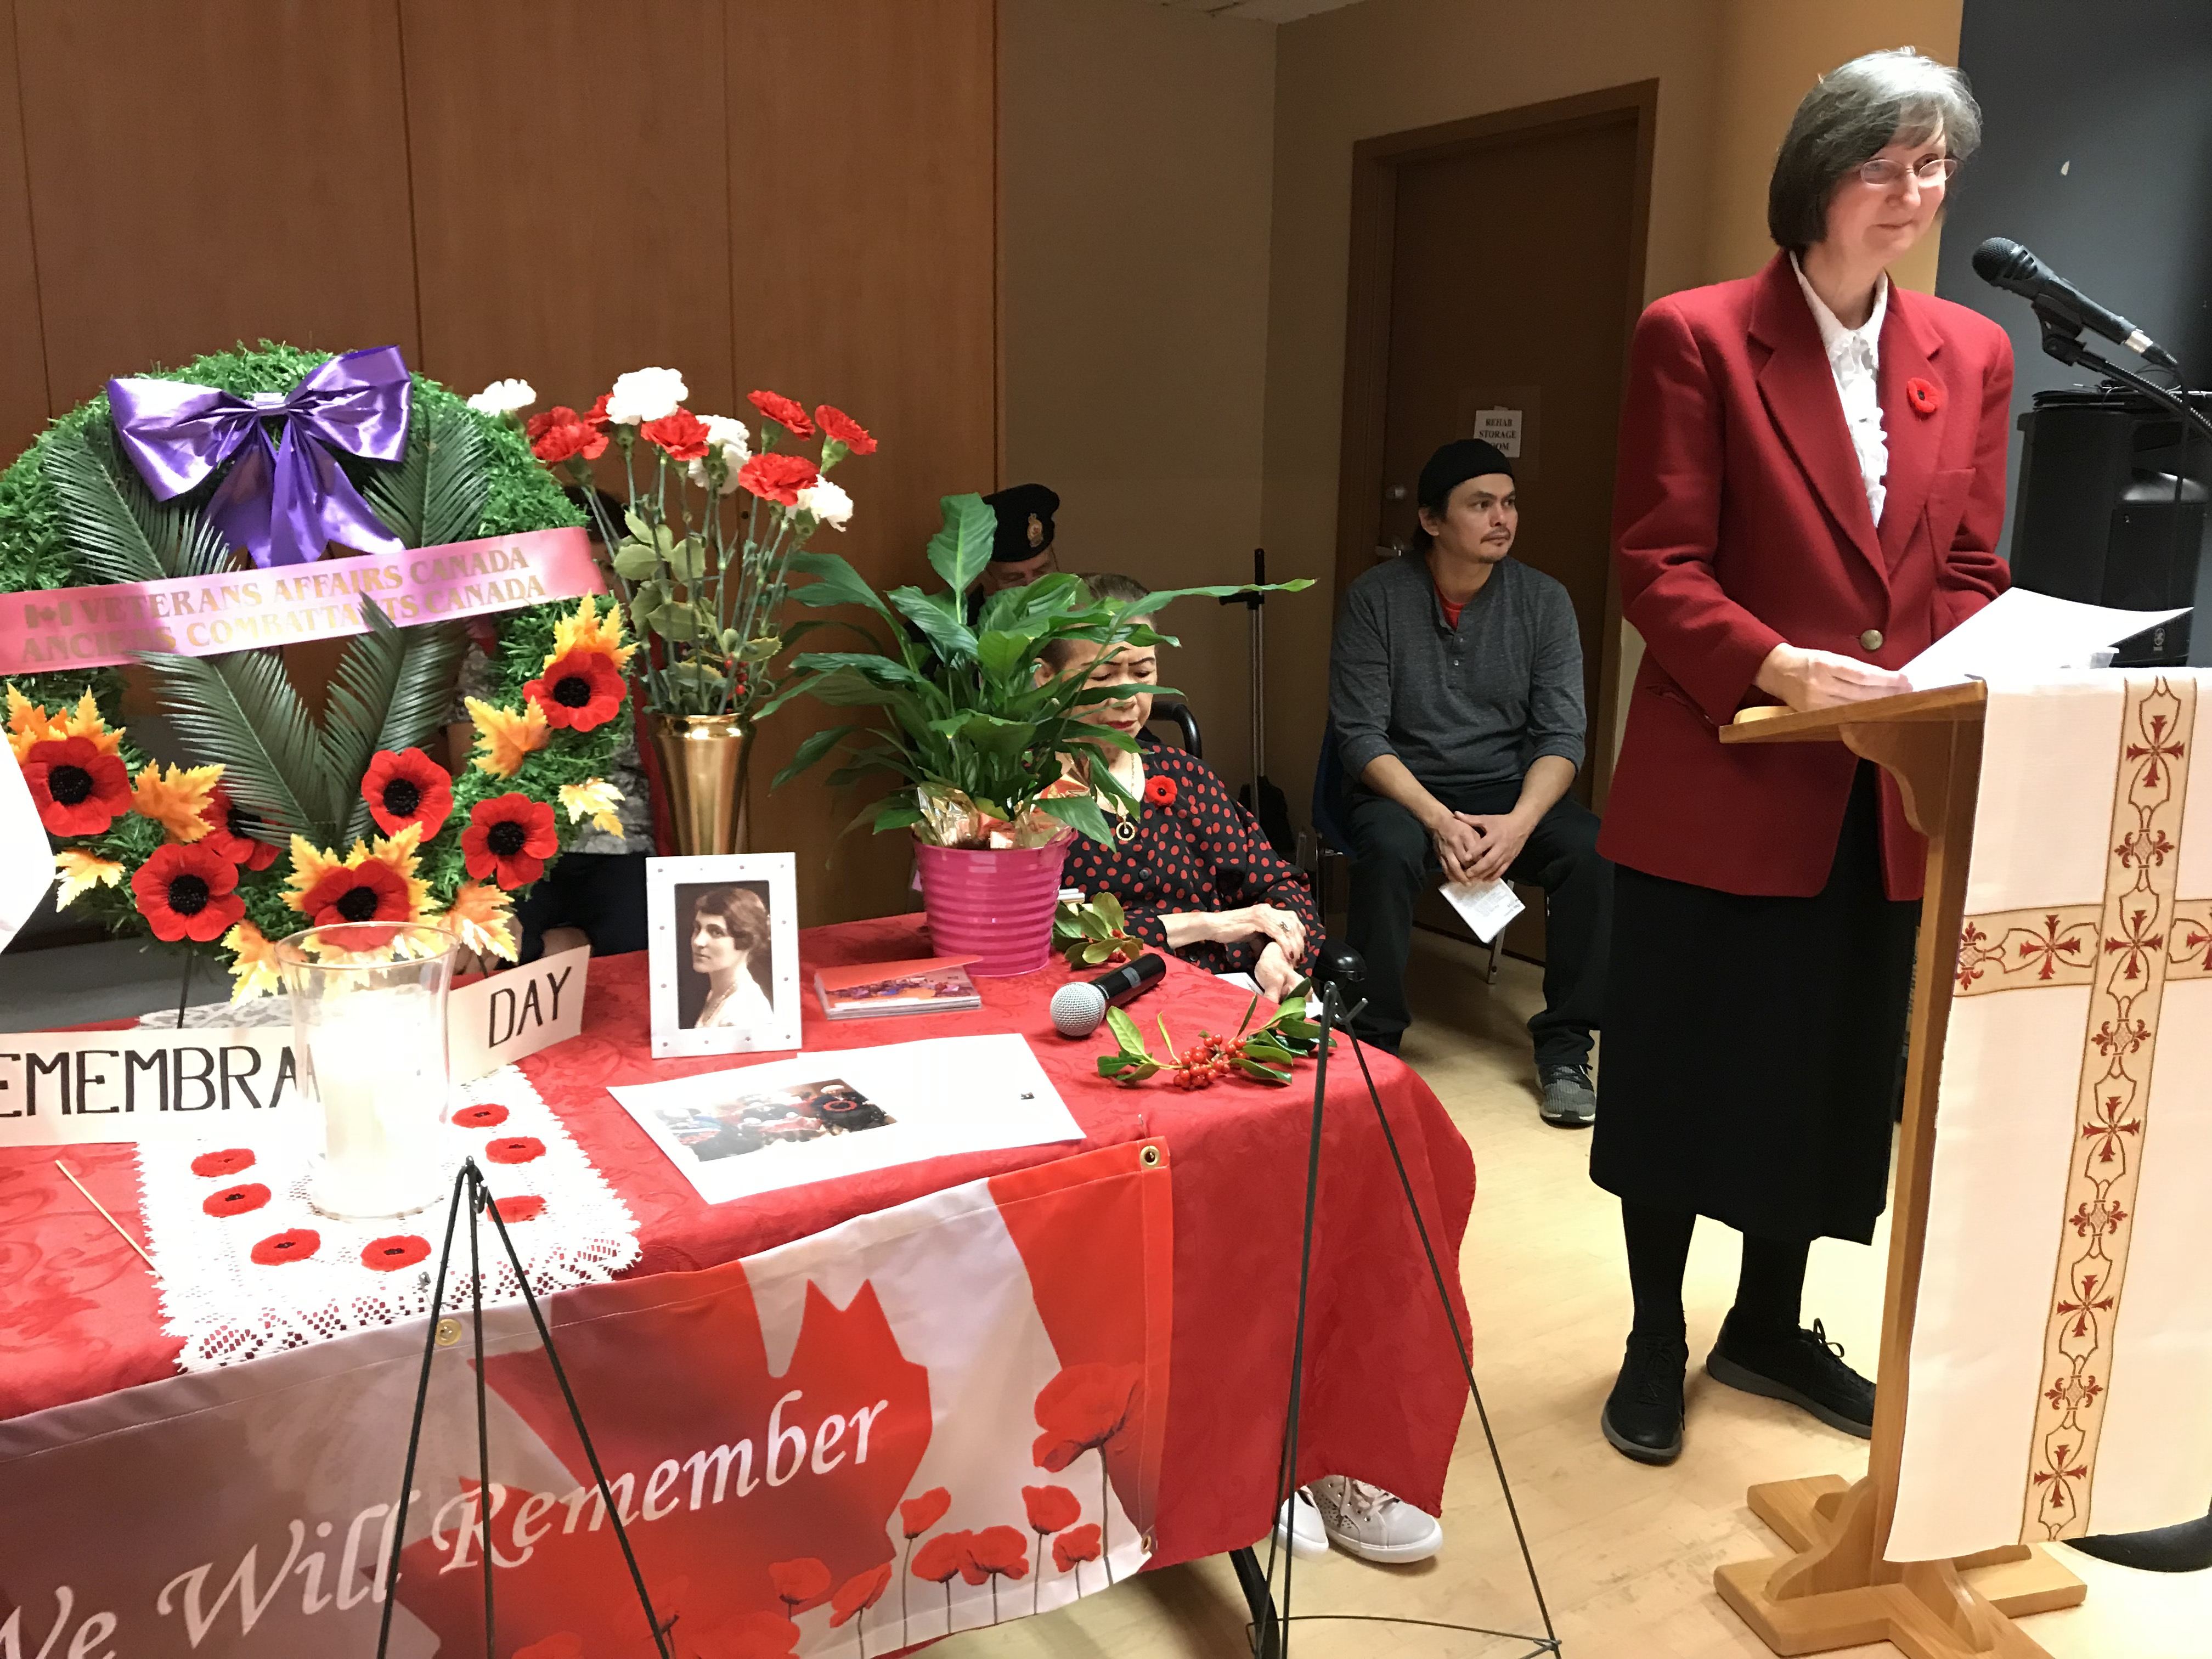 Cecilia Moore at podium with table of Remembrance Day wreaths next to her.